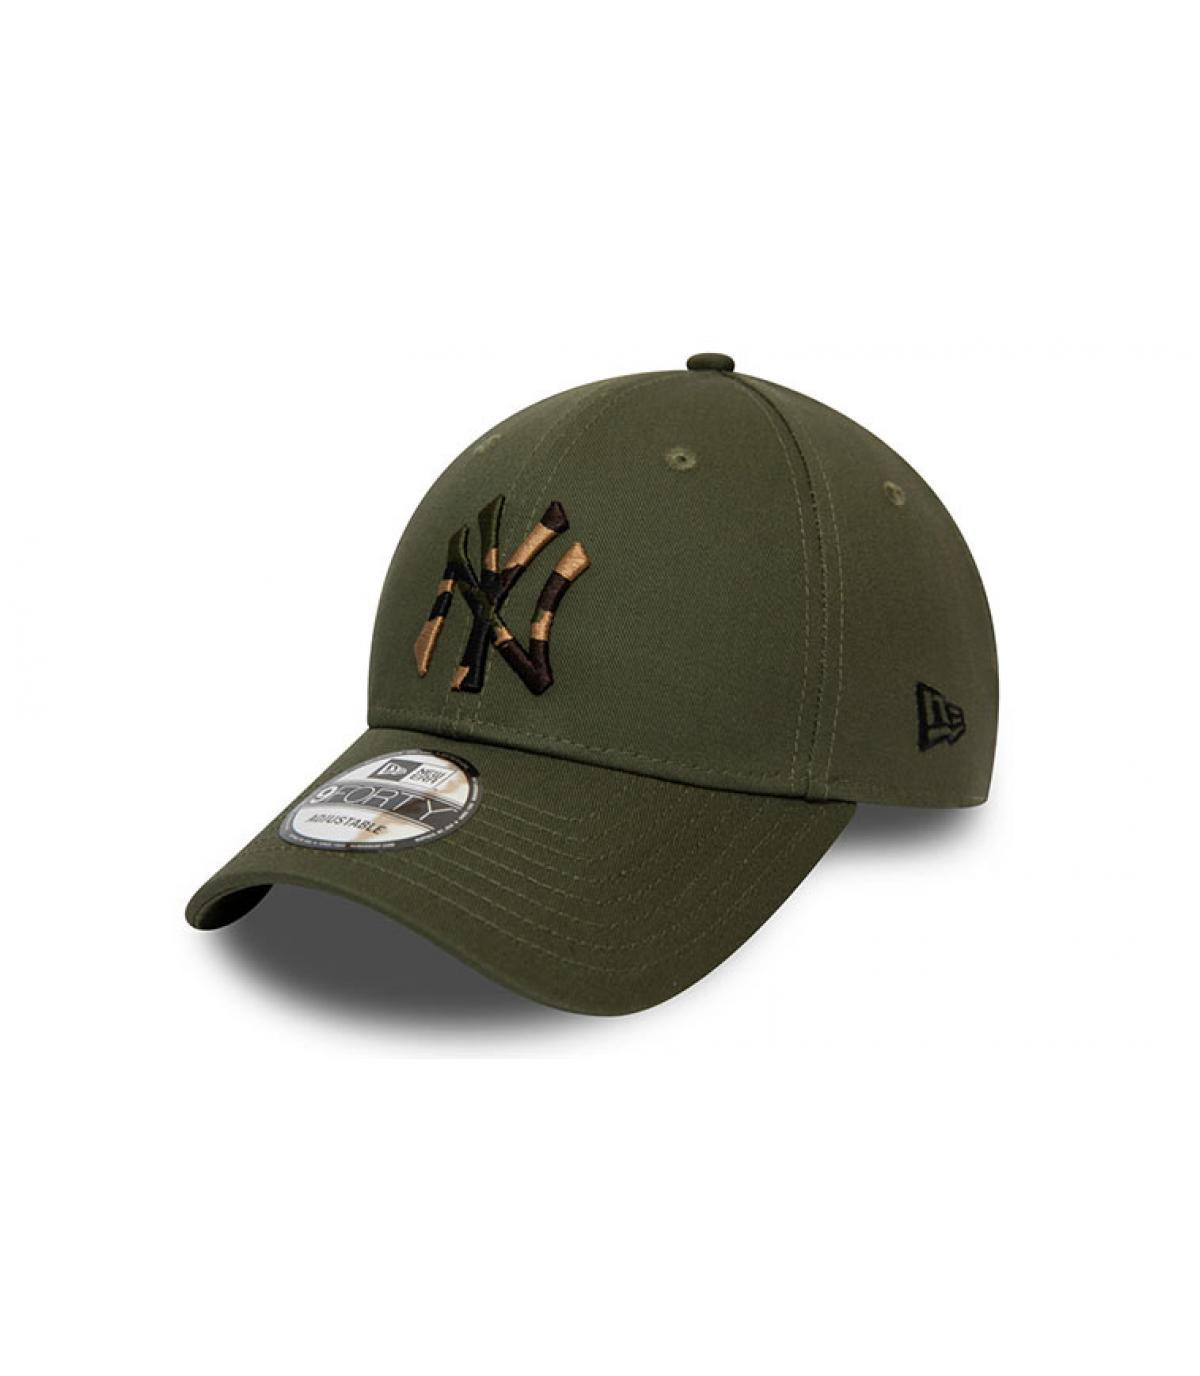 Détails Casquette Camo Infill 940 NY olive - image 2